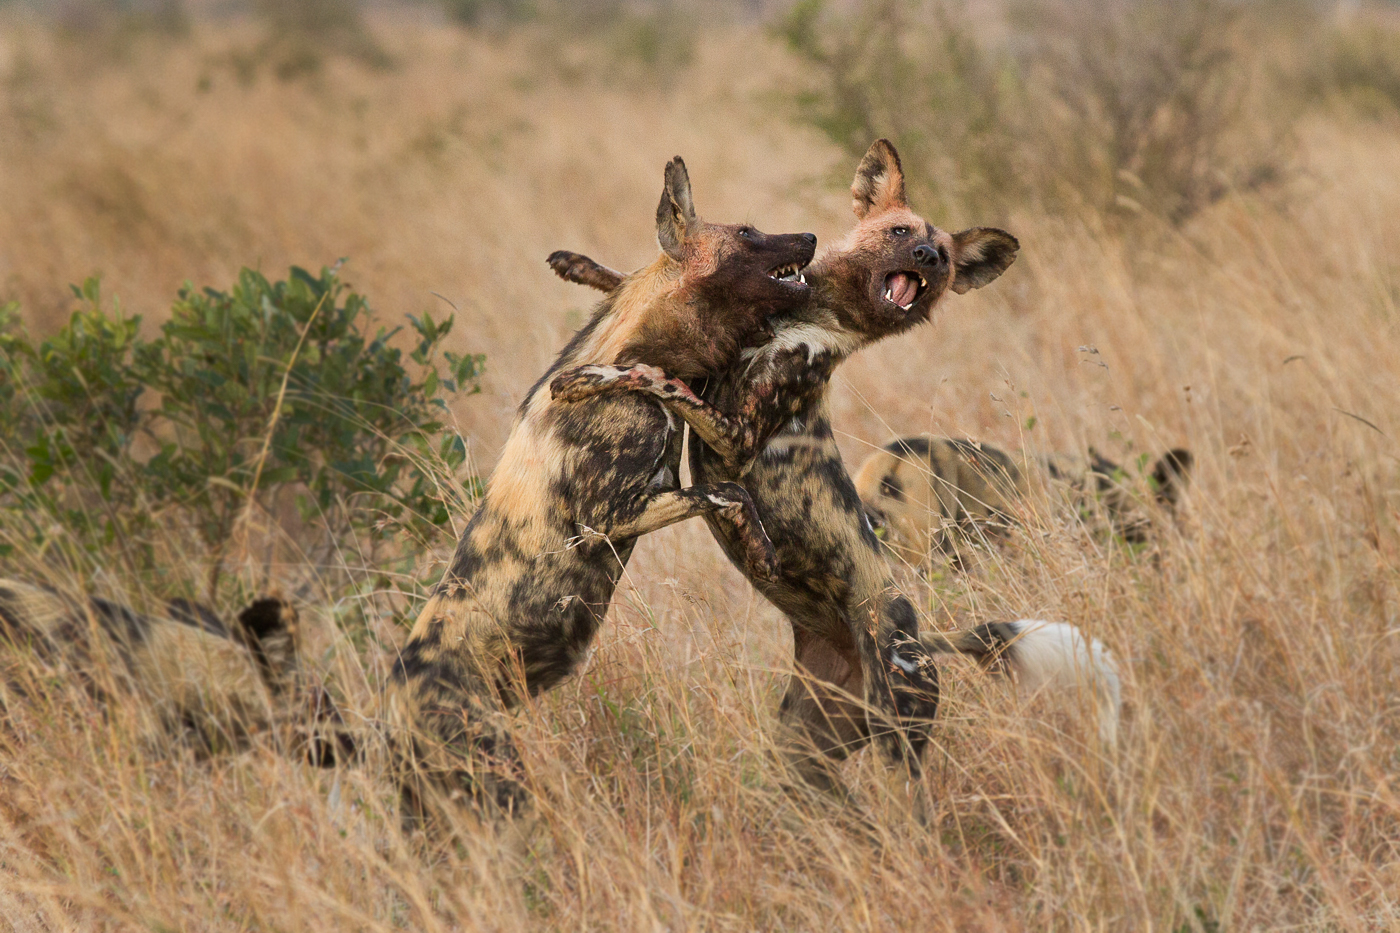 wild dogs play